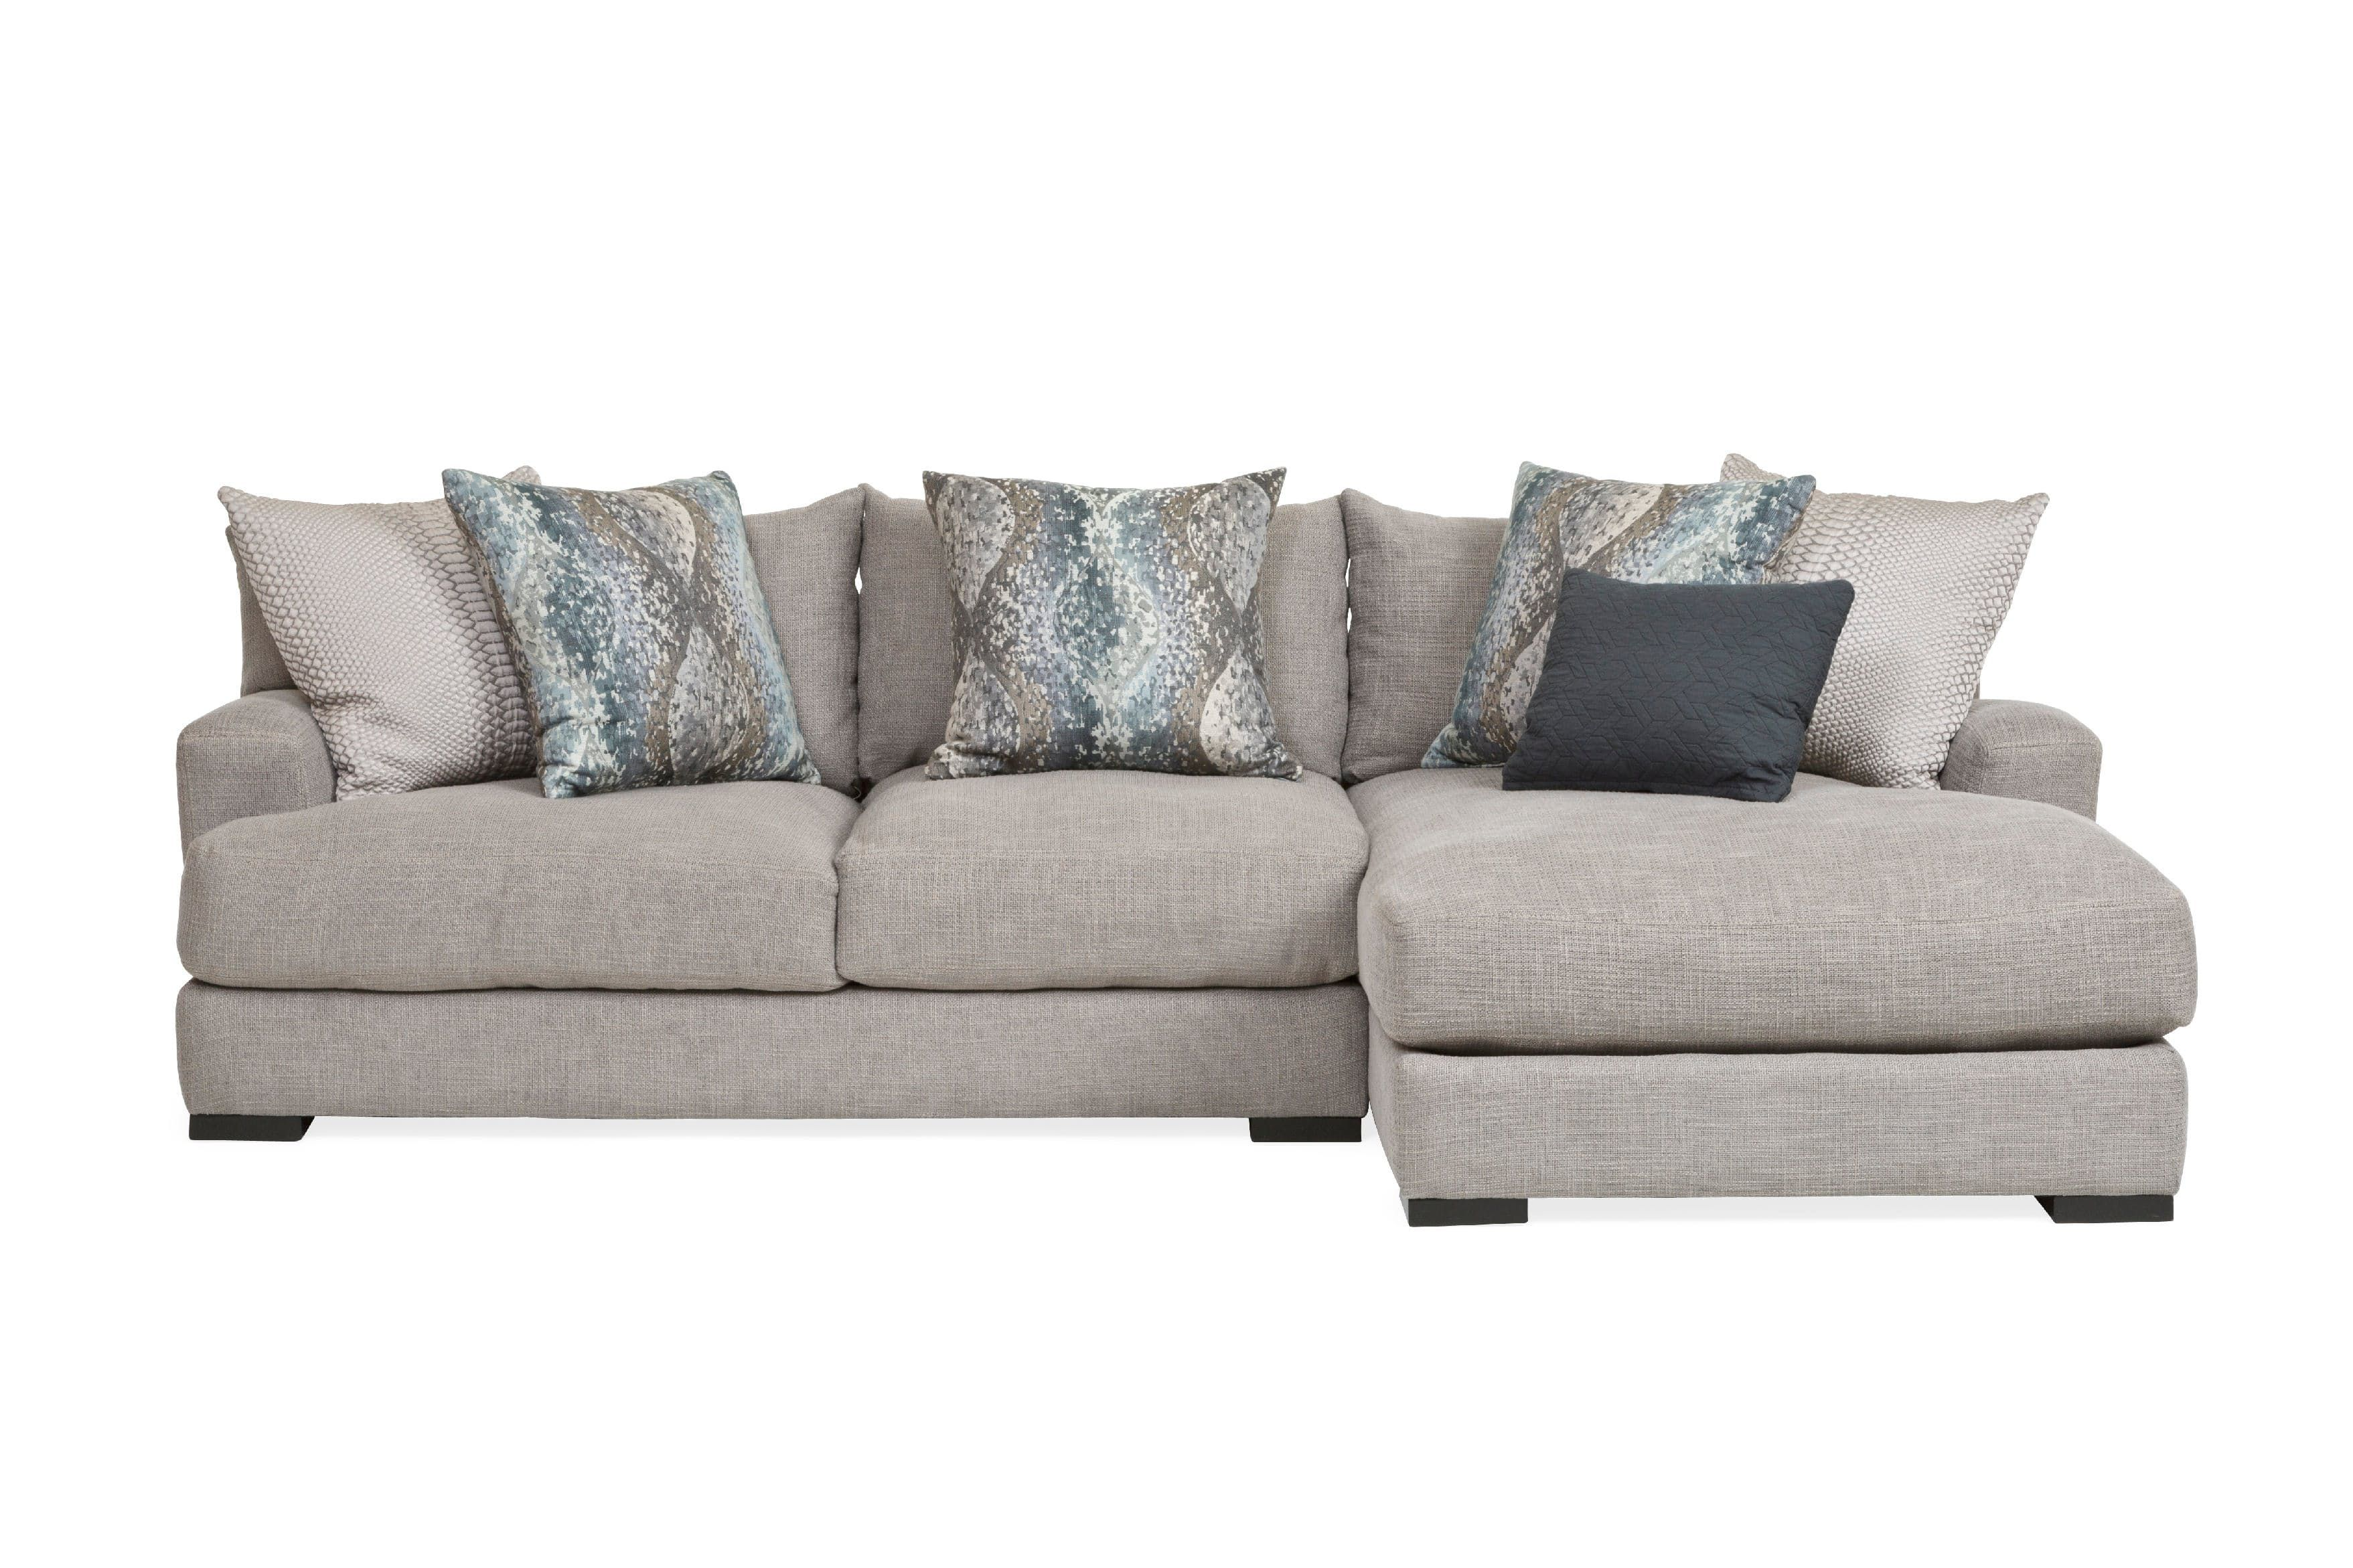 Carlin Chaise Sofa Kt:40758 | Playroom For Kids- | Chaise